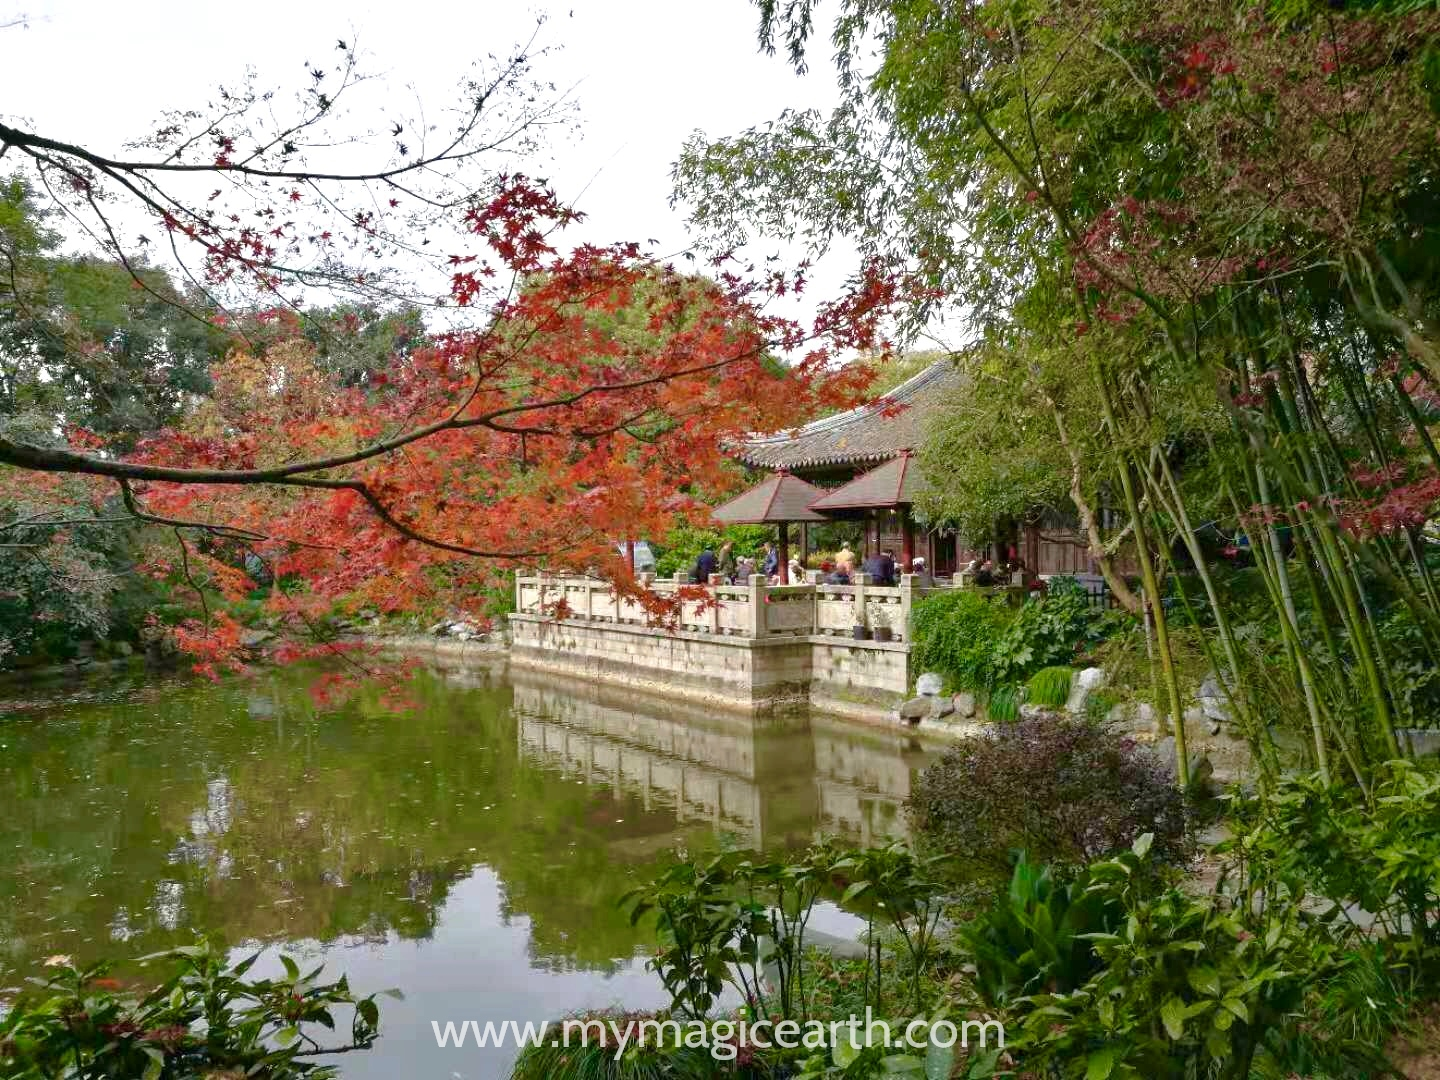 Pond and Pavilion in Guilin Park, Shanghai